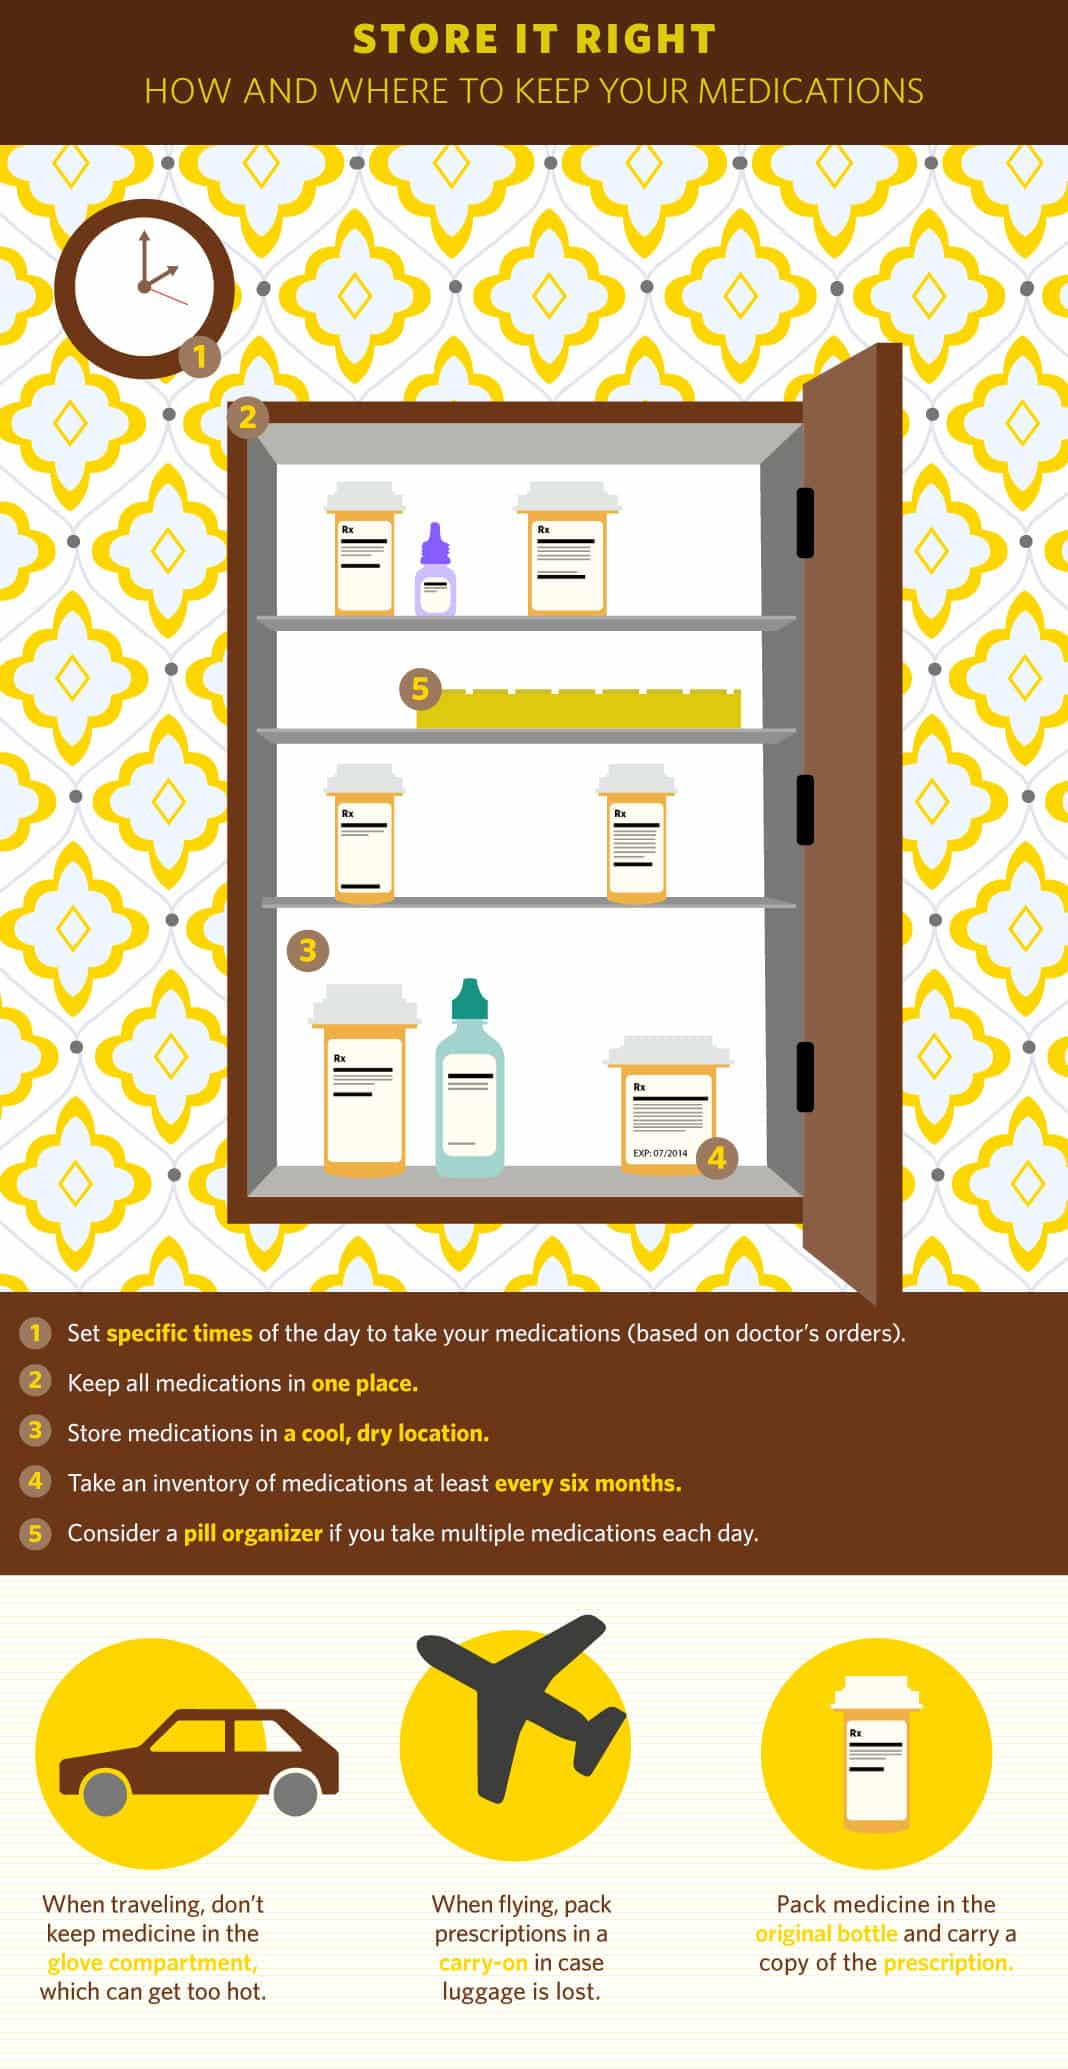 Store it right: How and where to keep your medications